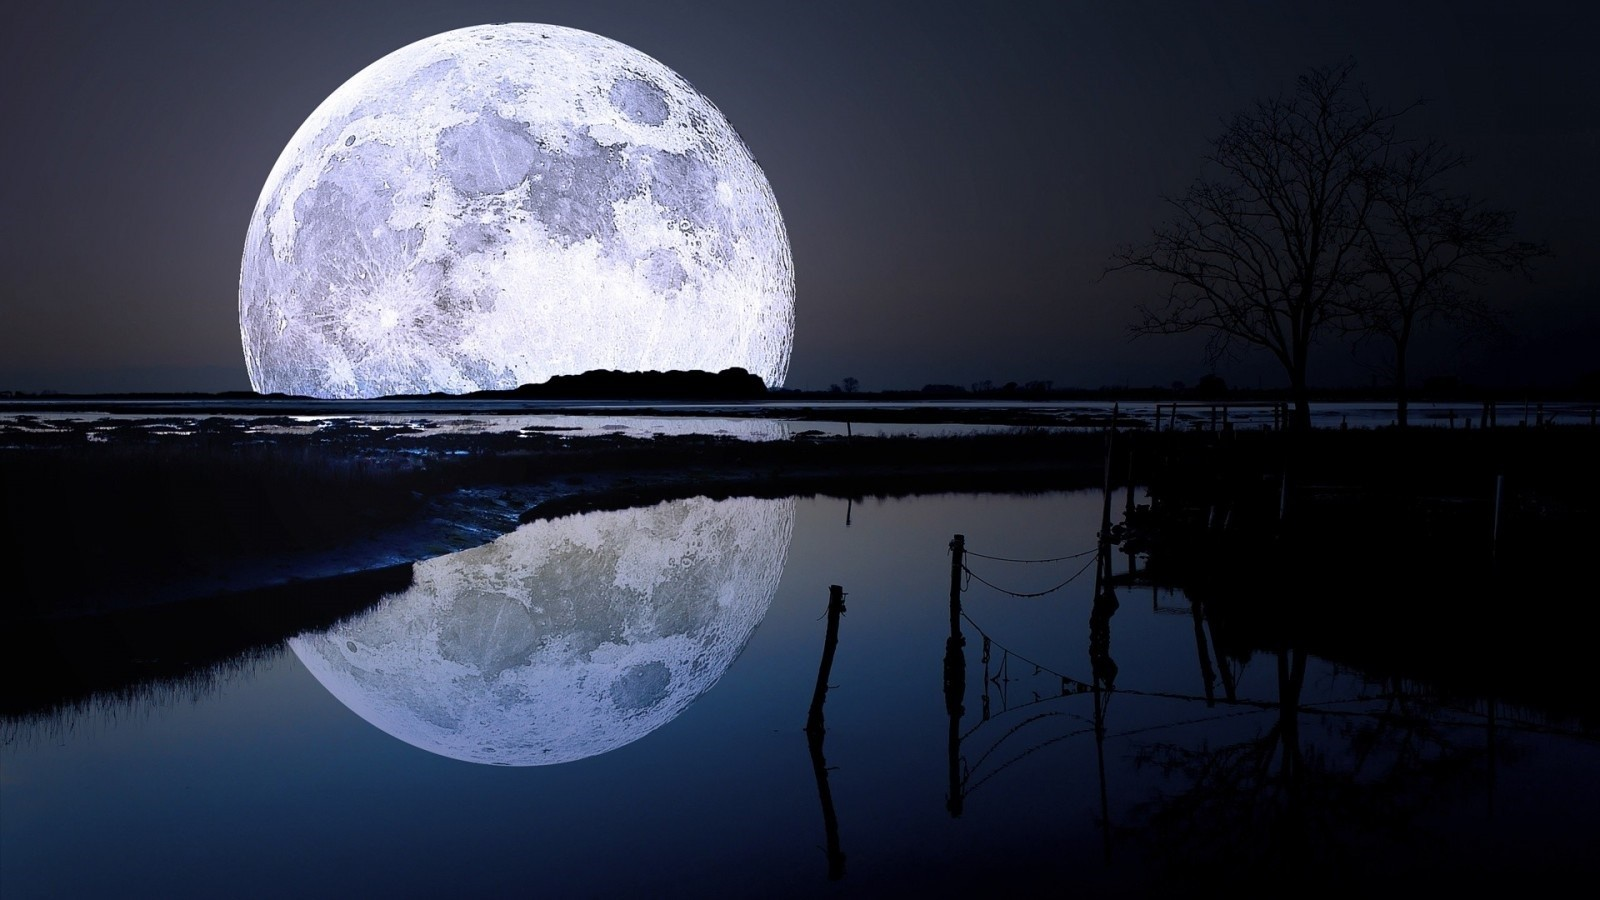 Best Full Moon Wallpaper Kolpaper Awesome Free Hd Wallpapers